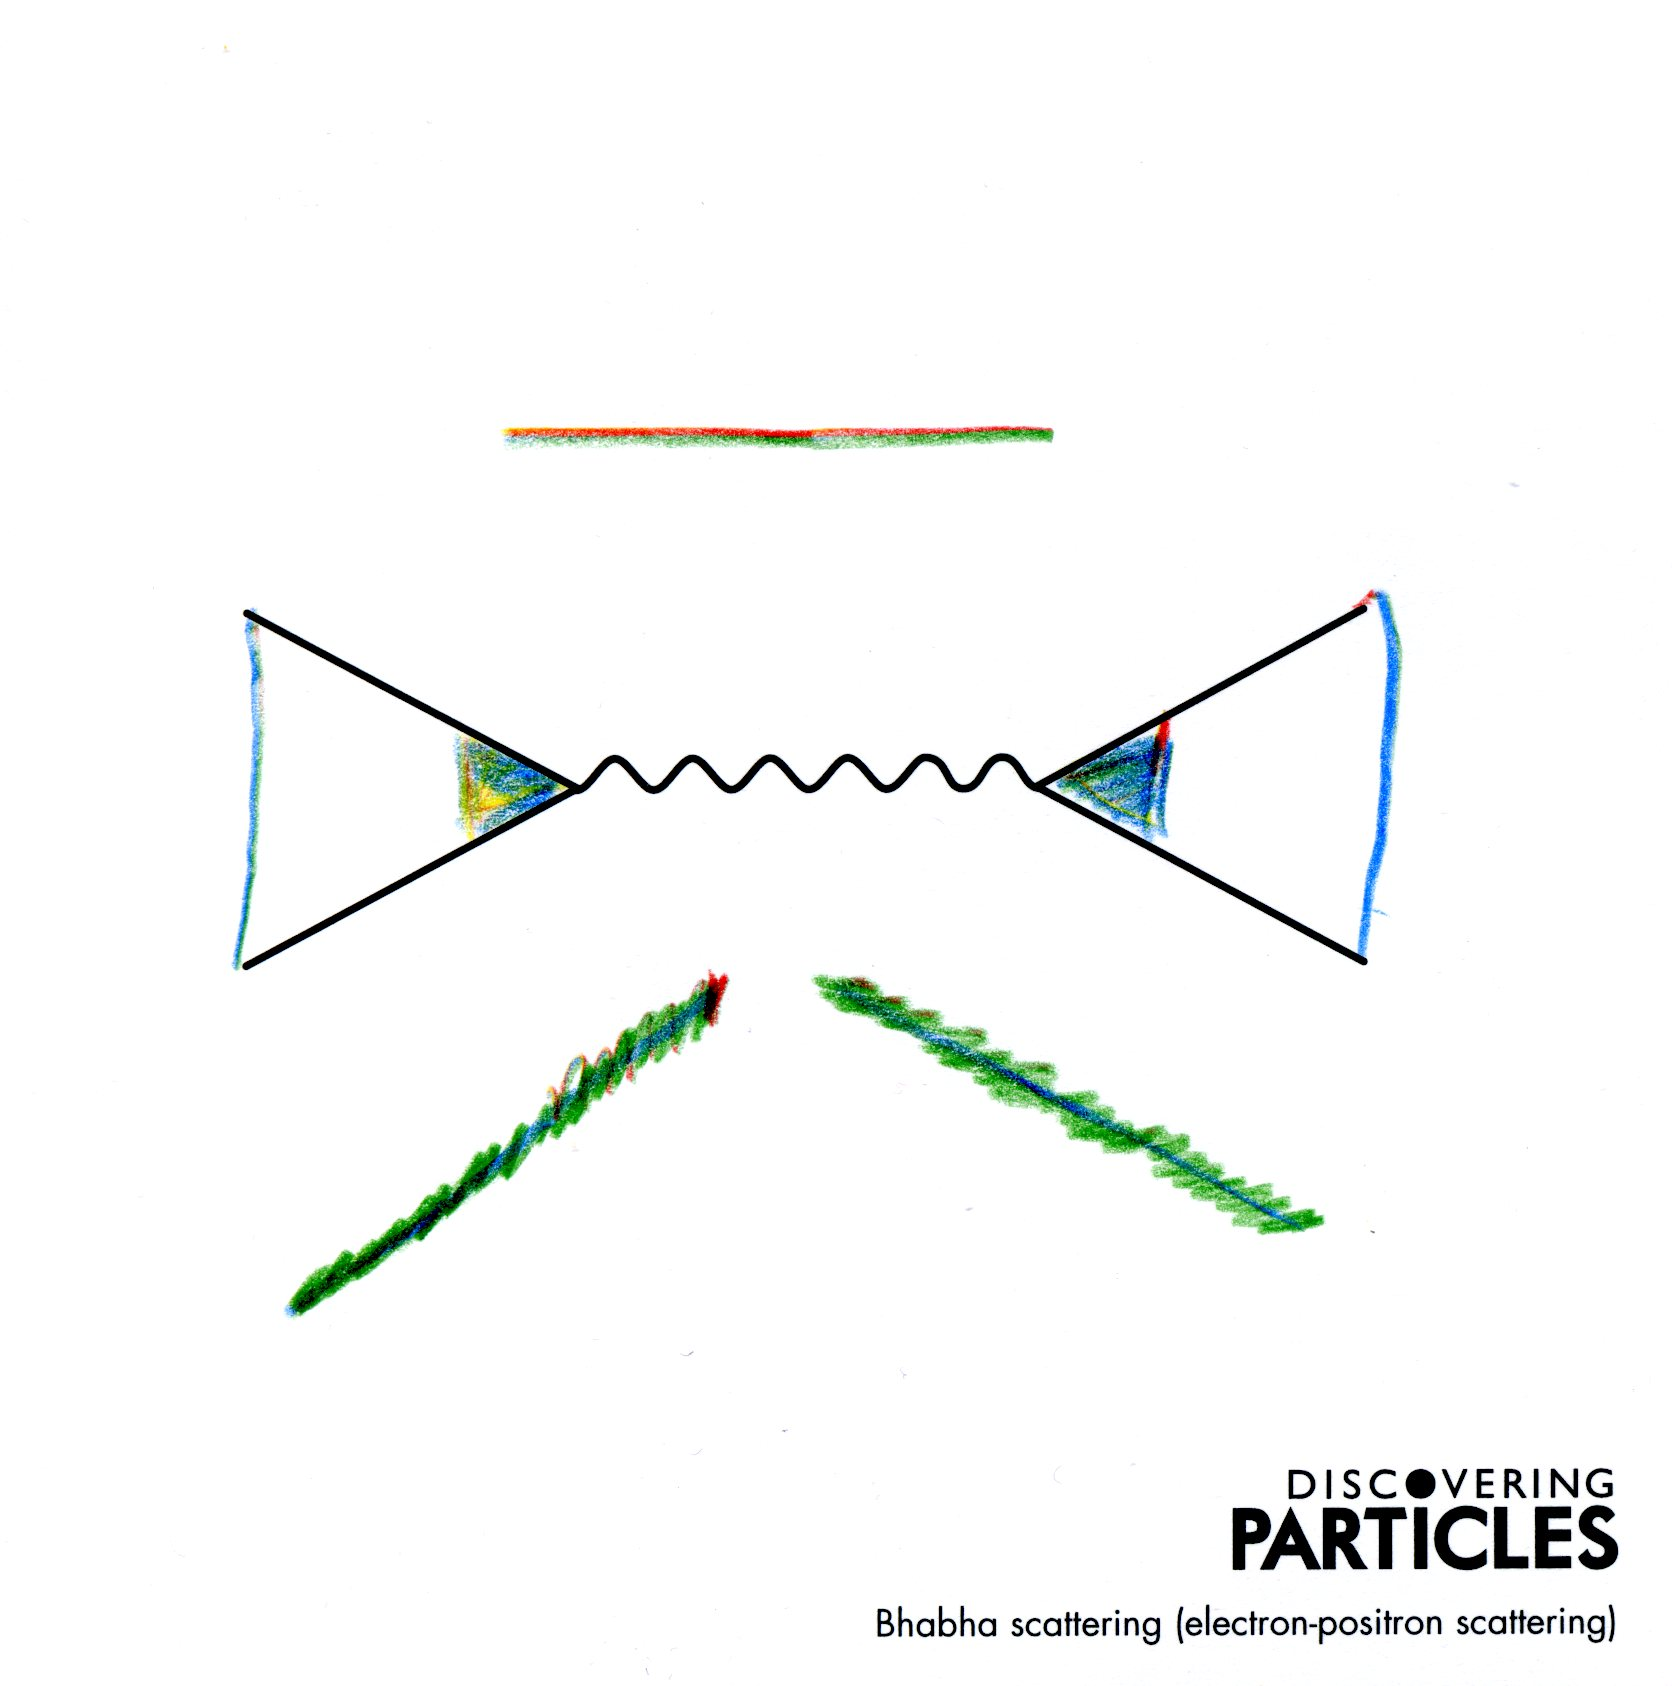 Discovering particles: Feynman zoo